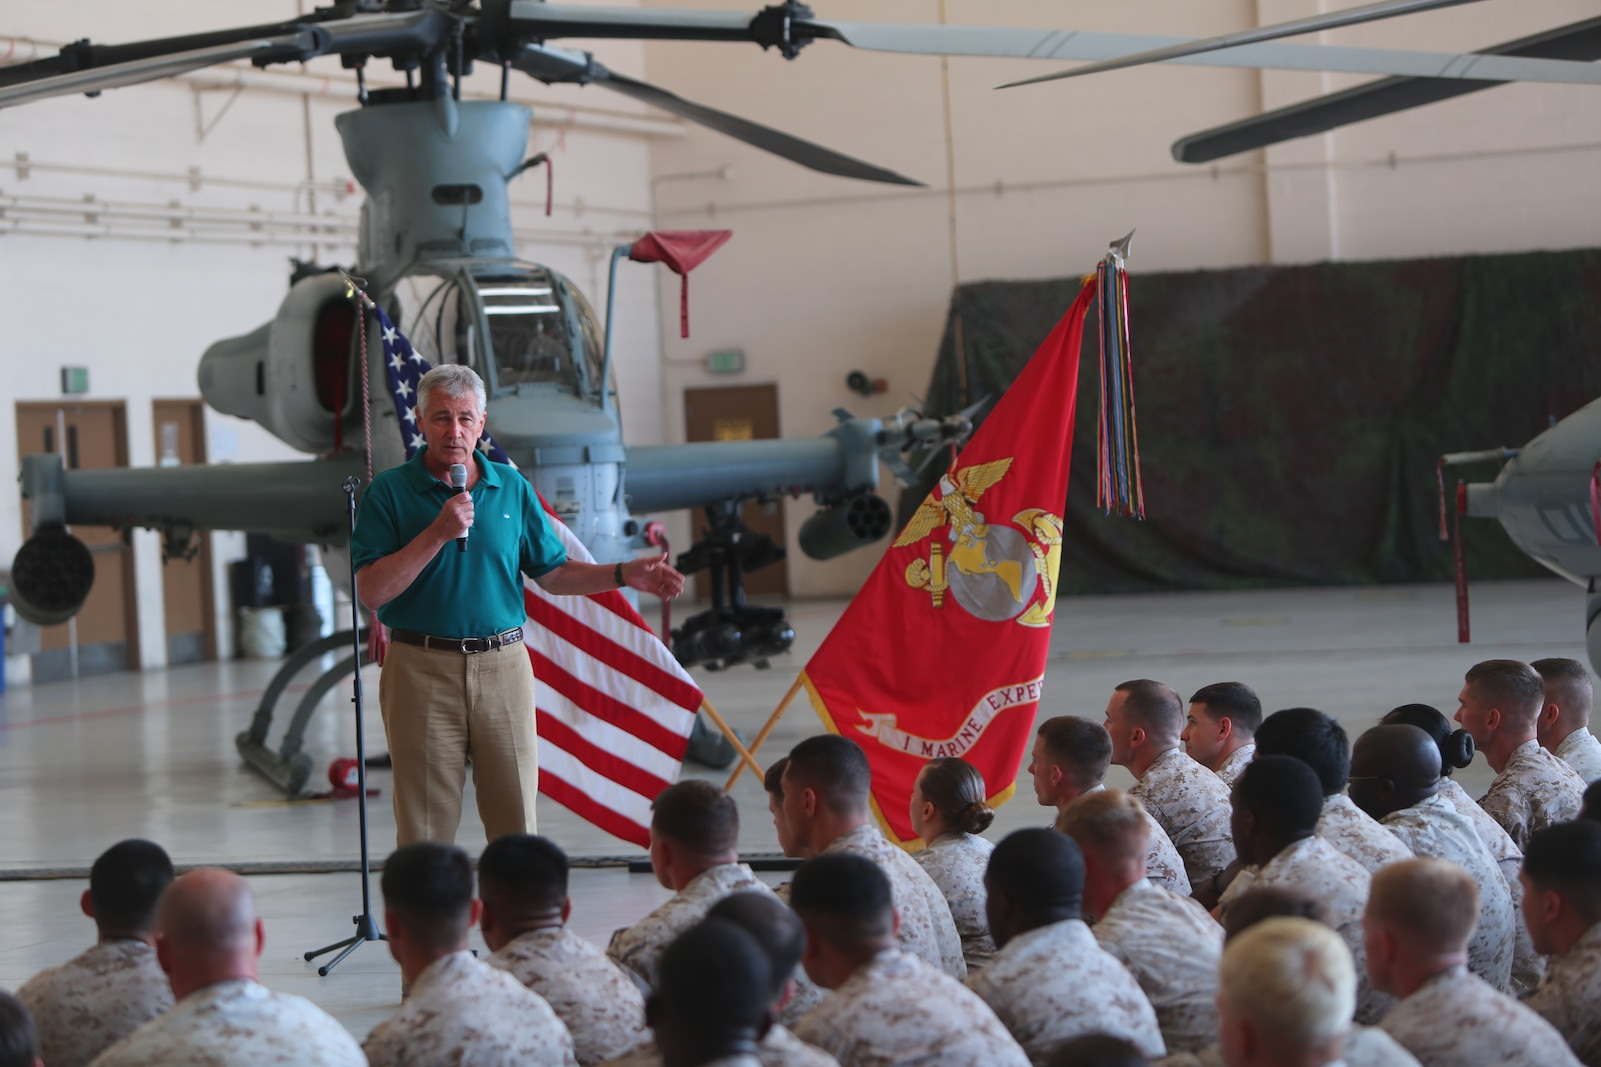 The U.S. Secretary of Defense, Chuck Hagel, speaks during a town hall meeting aboard Marine Corps Base Camp Pendleton Calif., Aug. 12, 2014. The purpose of his visit was to thank our service members and their families for their contribution to our nation and reinforce his commitment to the defense of the nation.